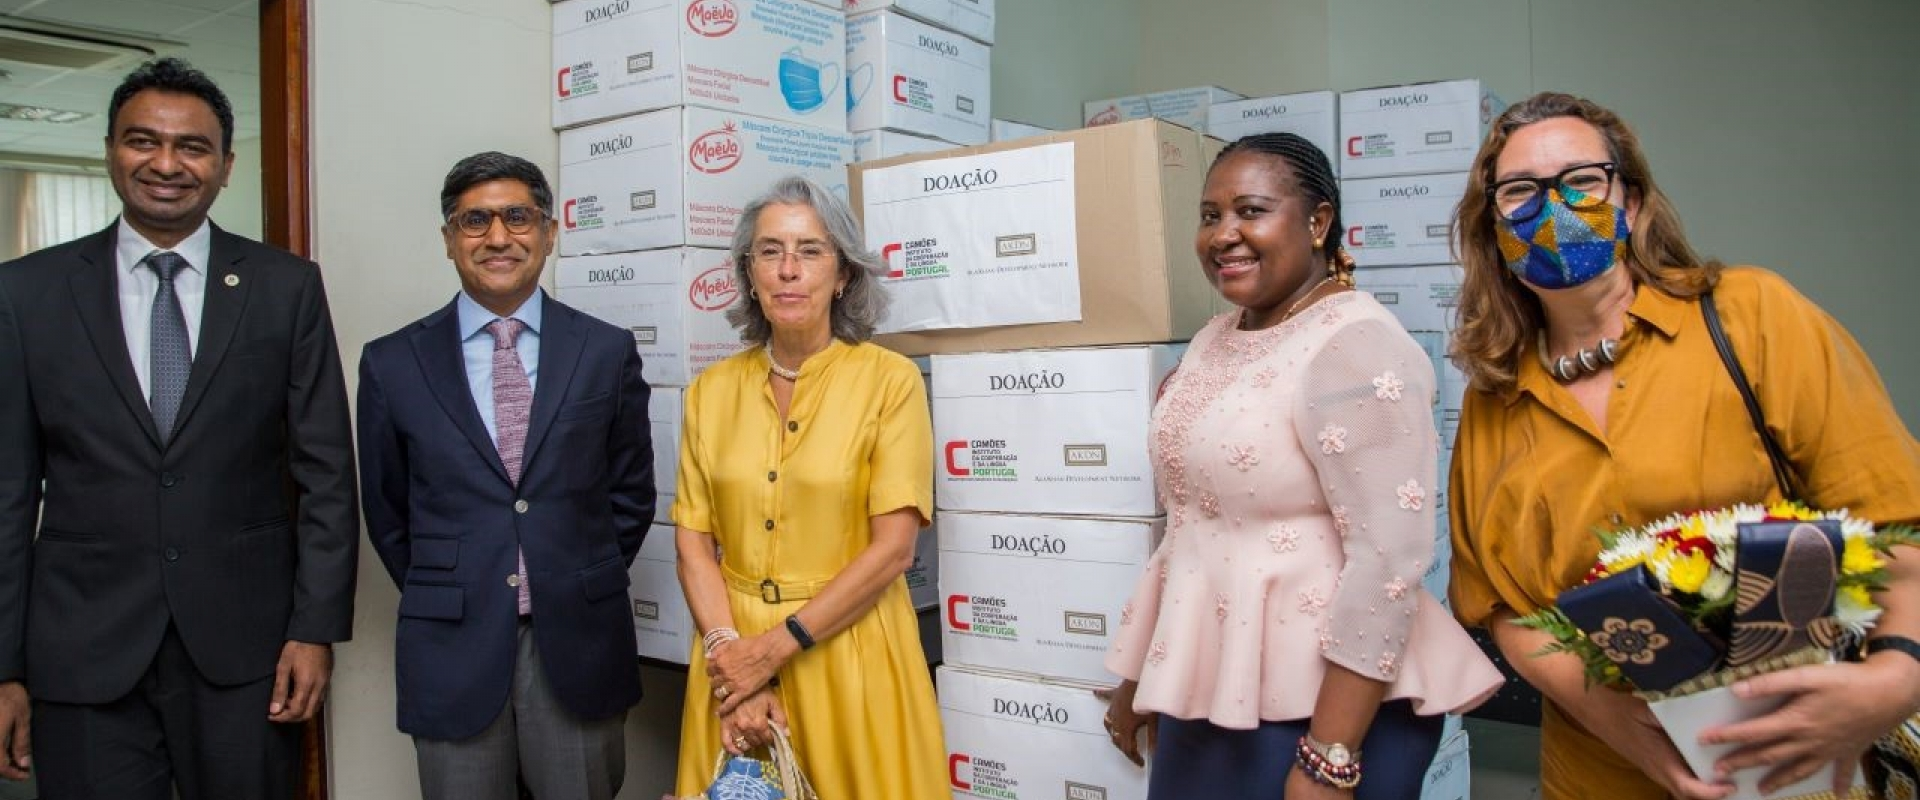 From left to right: General-Director of Moztex Fazmil Fyzer, Adjunct to the AKDN Diplomatic Representative Rui Carimo,Ambassador of Portugal to Mozambique Maria Amélia Paiva, Secretary of State of the Province of Maputo, Vitória Dias Diogo, and Councillor for Cooperation of the Embassy of Portugal to Mozambique Patrícia Pincarilho, posing in front of the donated goods.